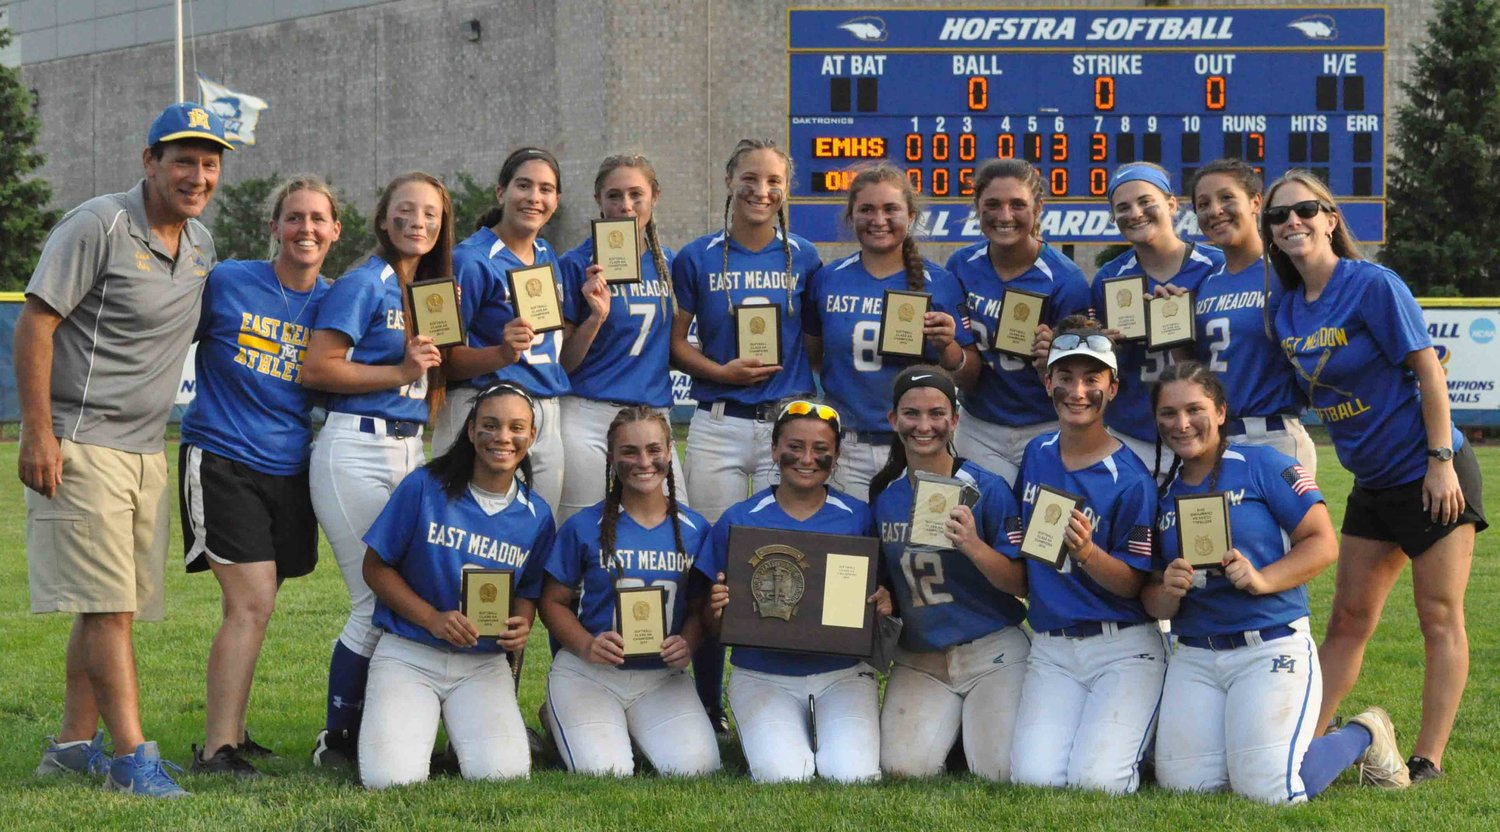 The Lady Jets made it three straight Nassau Class AA softball titles with a come-from-behind 7-5 win over Oceanside last Saturday.